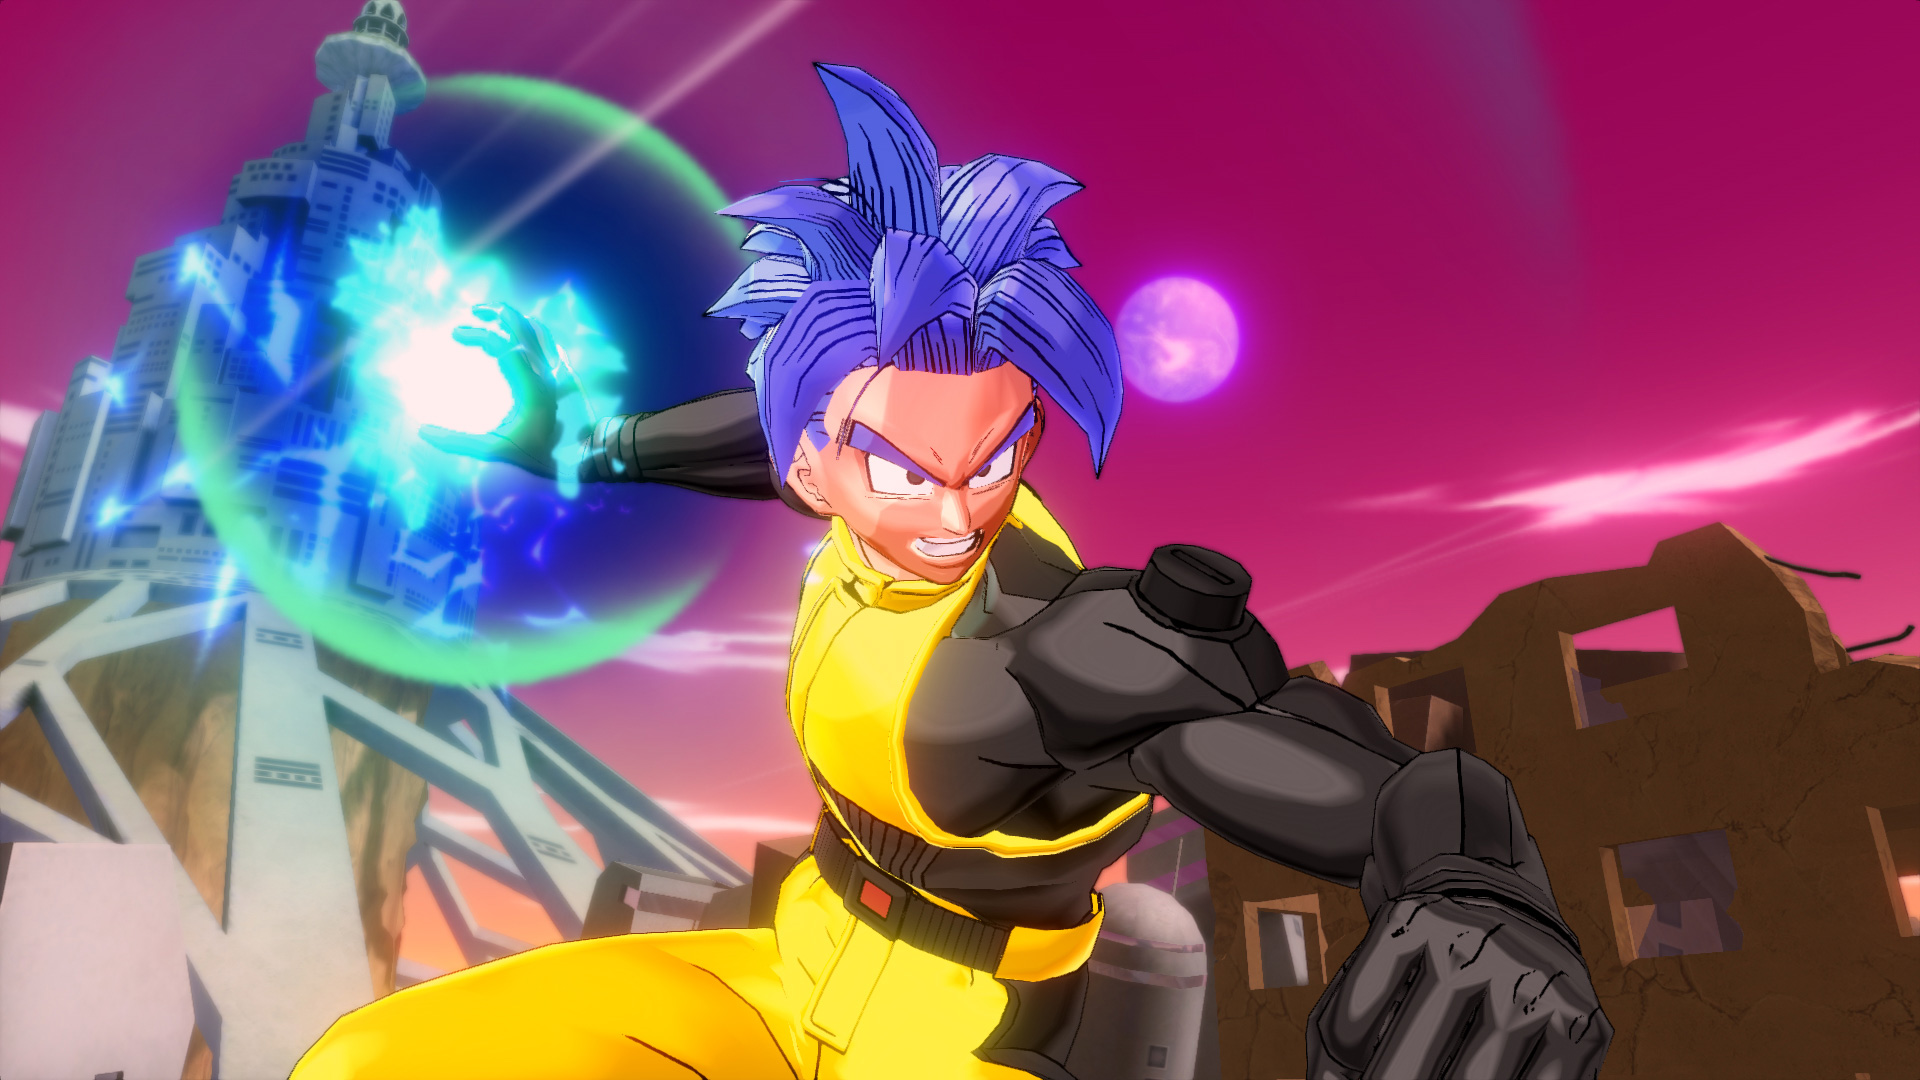 Dragon-Ball-Xenoverse-Screenshot-Misc-5